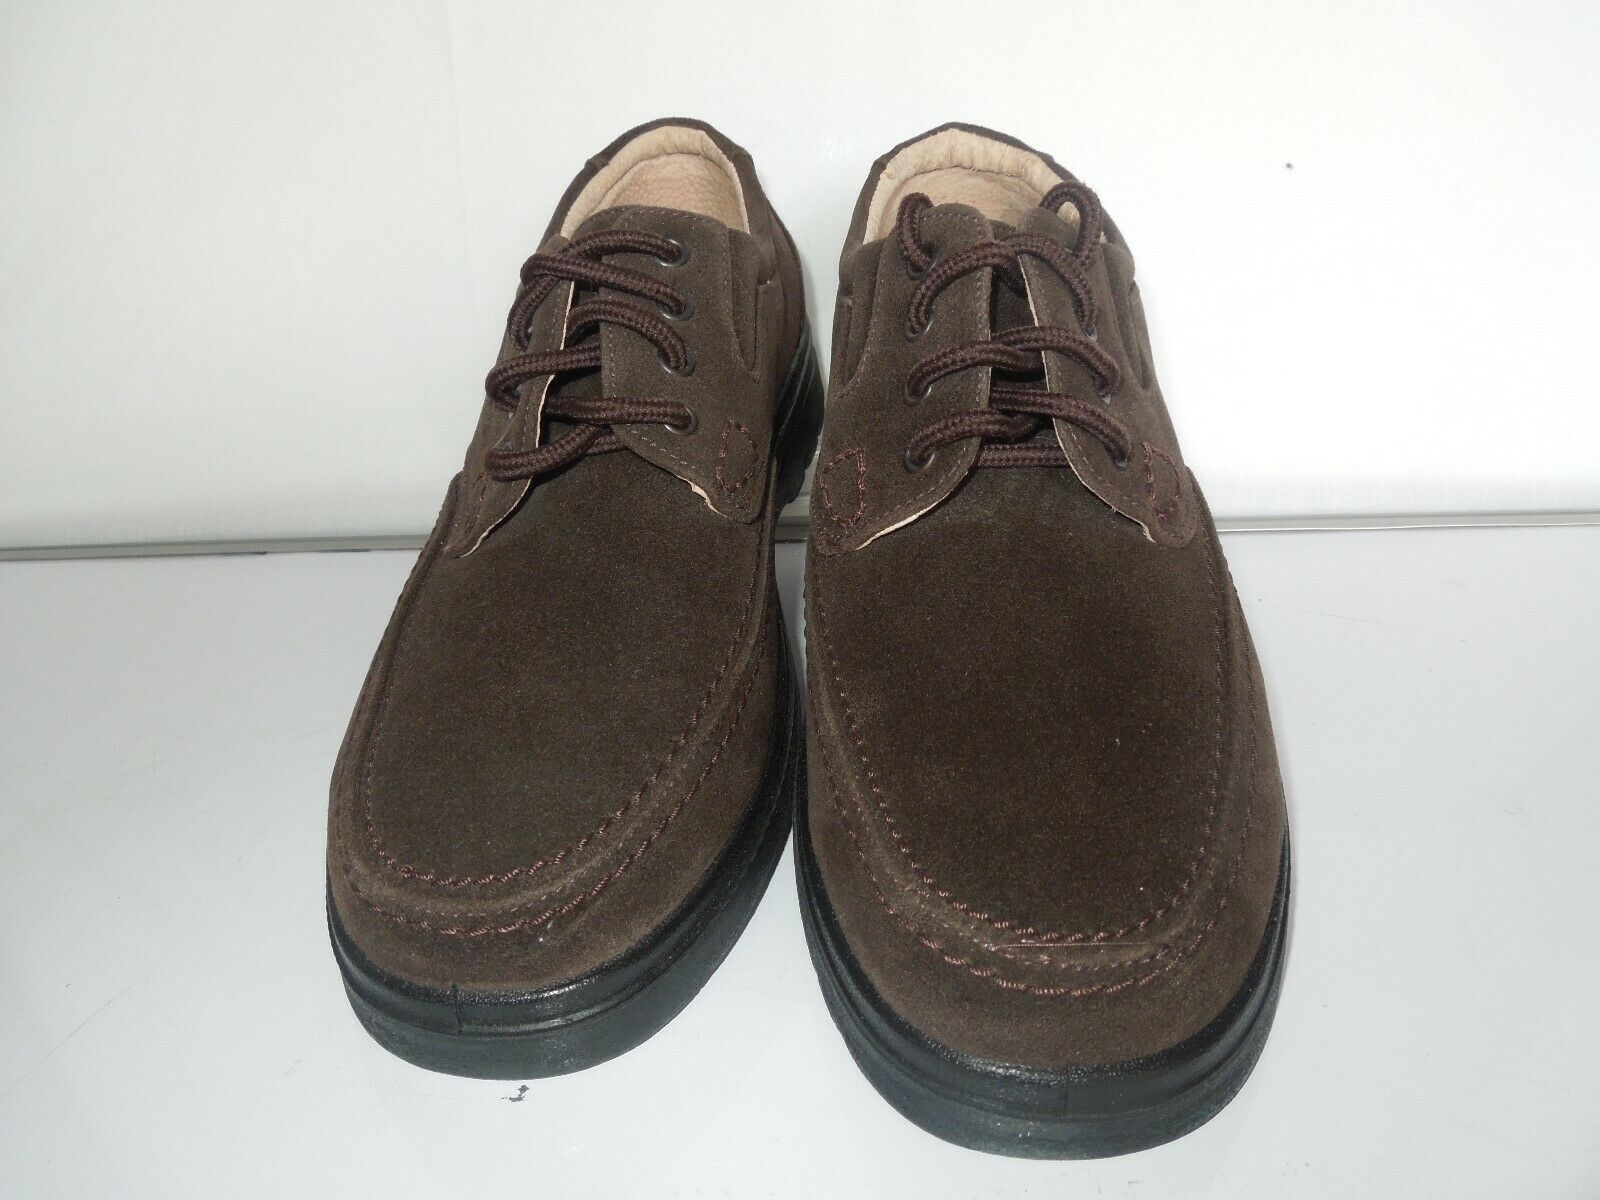 Mens INNOVATE Casual Shoes Size 11 UK Brown Lace up Lightweight. NEW WITHOUT BOX